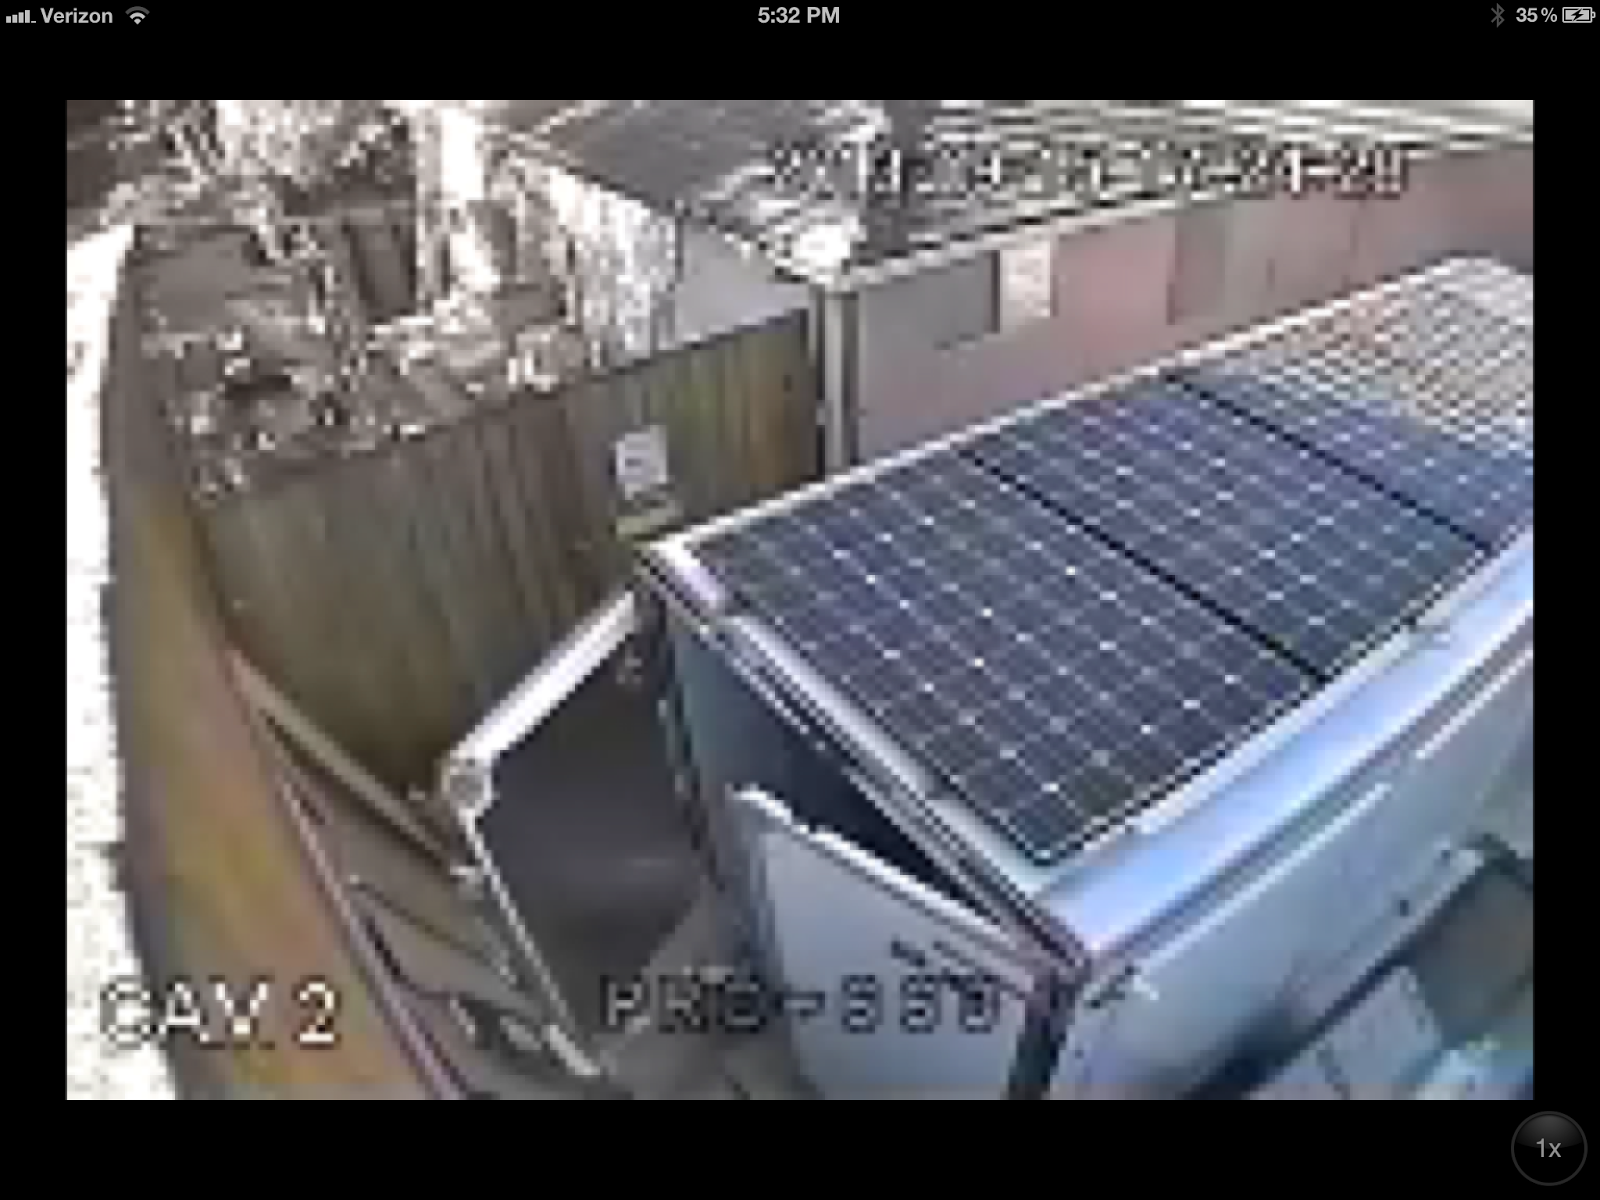 2013 CarMate 100% Solar Heated and Cooled Over The Top Cargo Trailer : Problems with the Solar